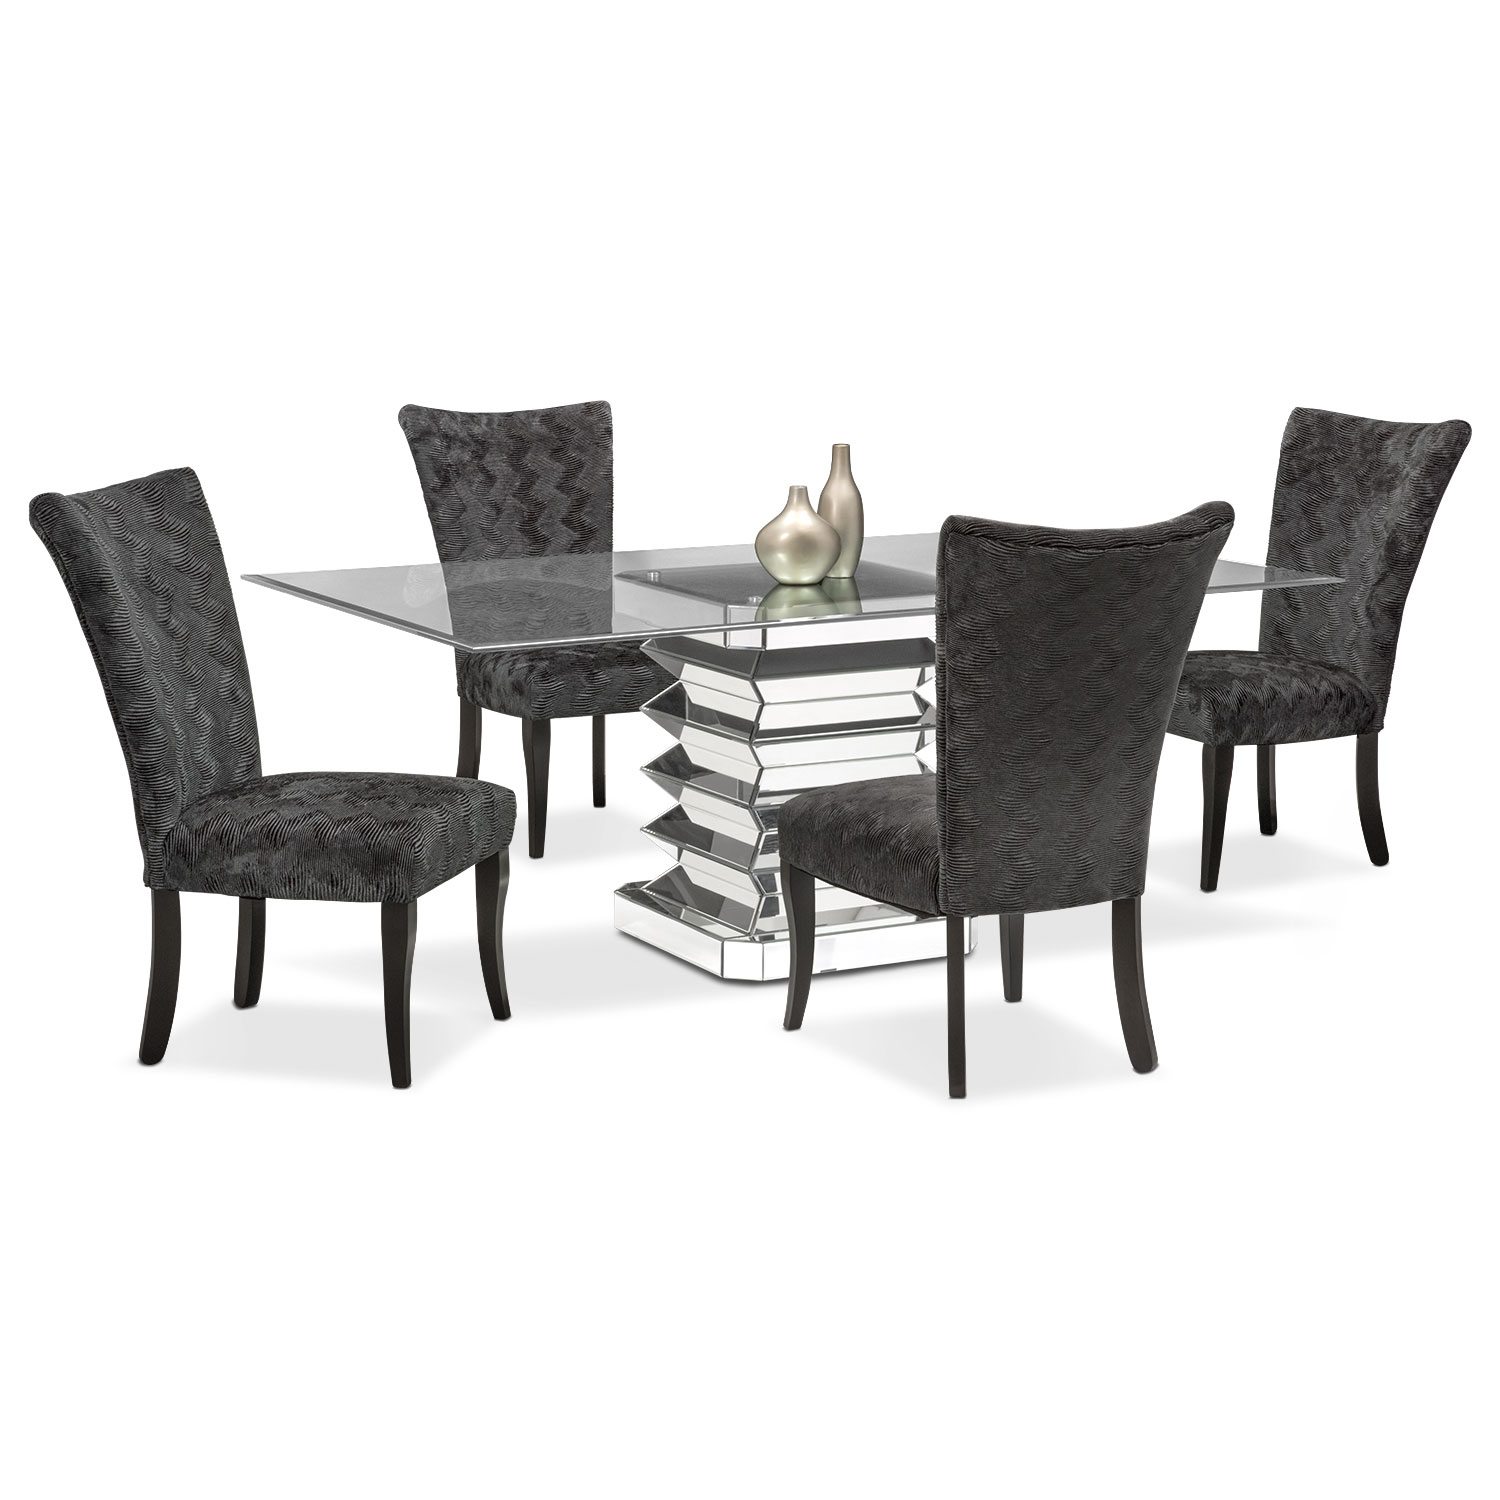 Vibrato Table and 4 Chairs - Charcoal